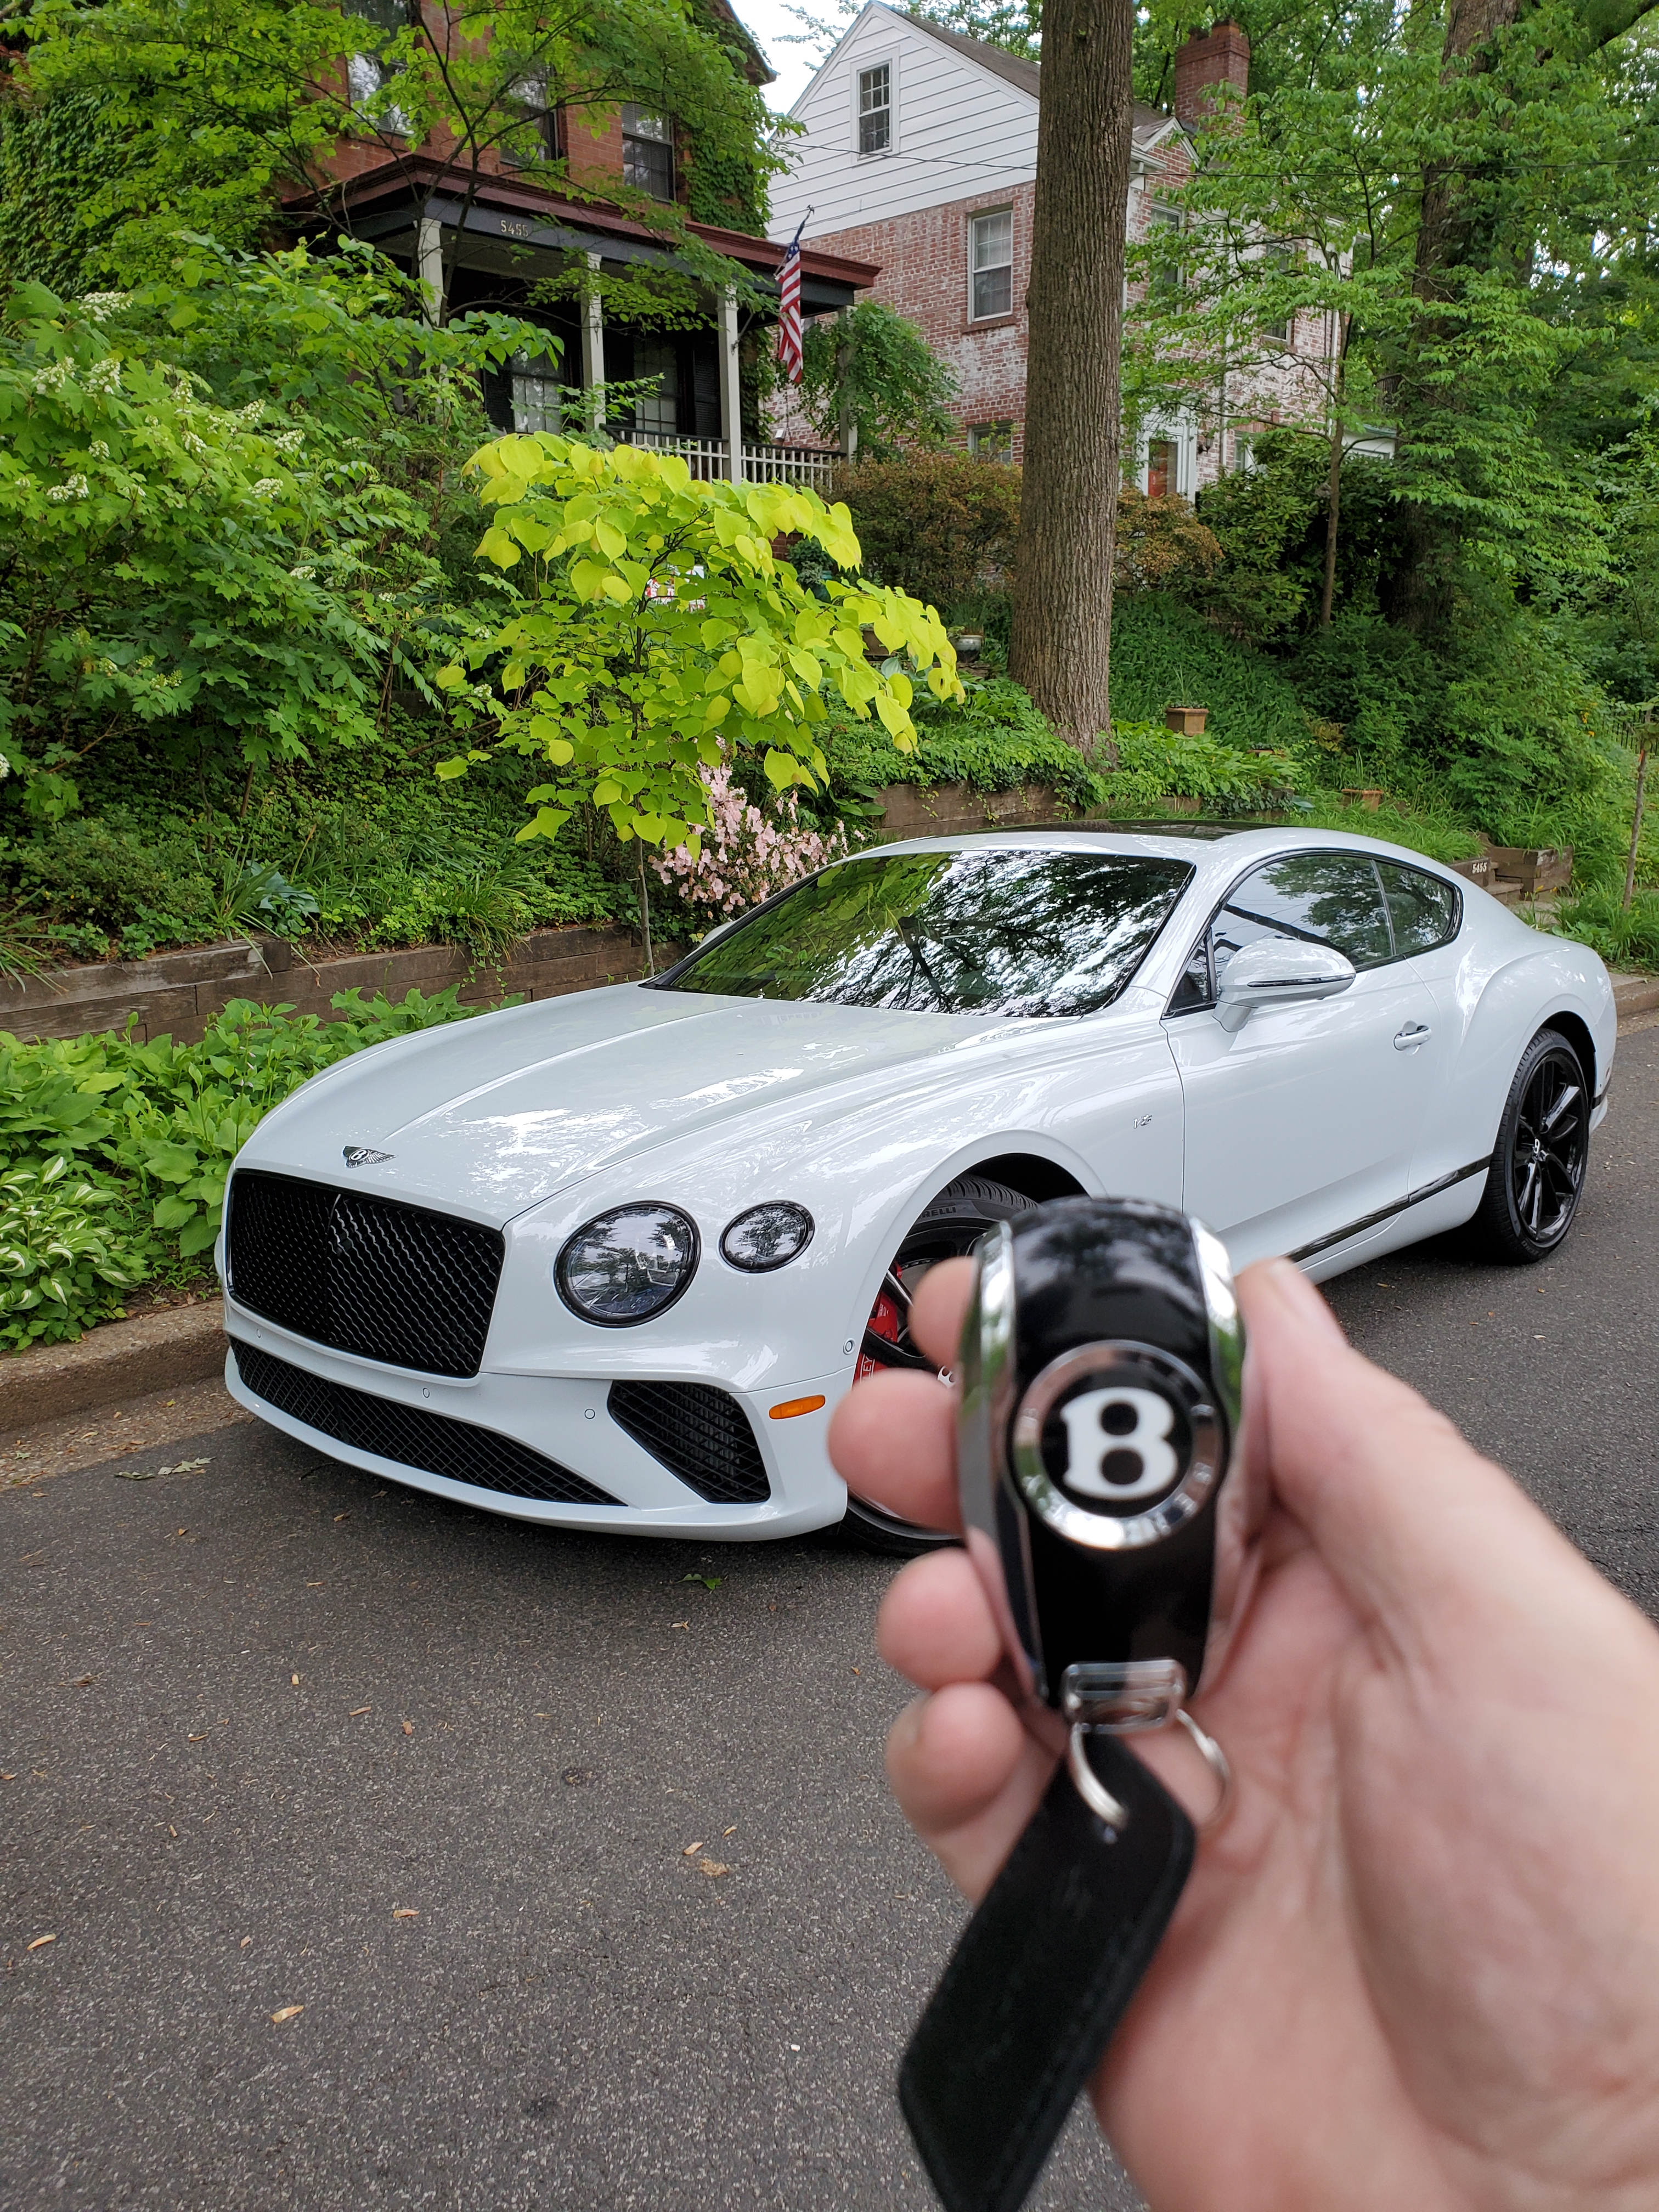 bentley continental gt v8 with key being held in front of it with a green space and house behind it